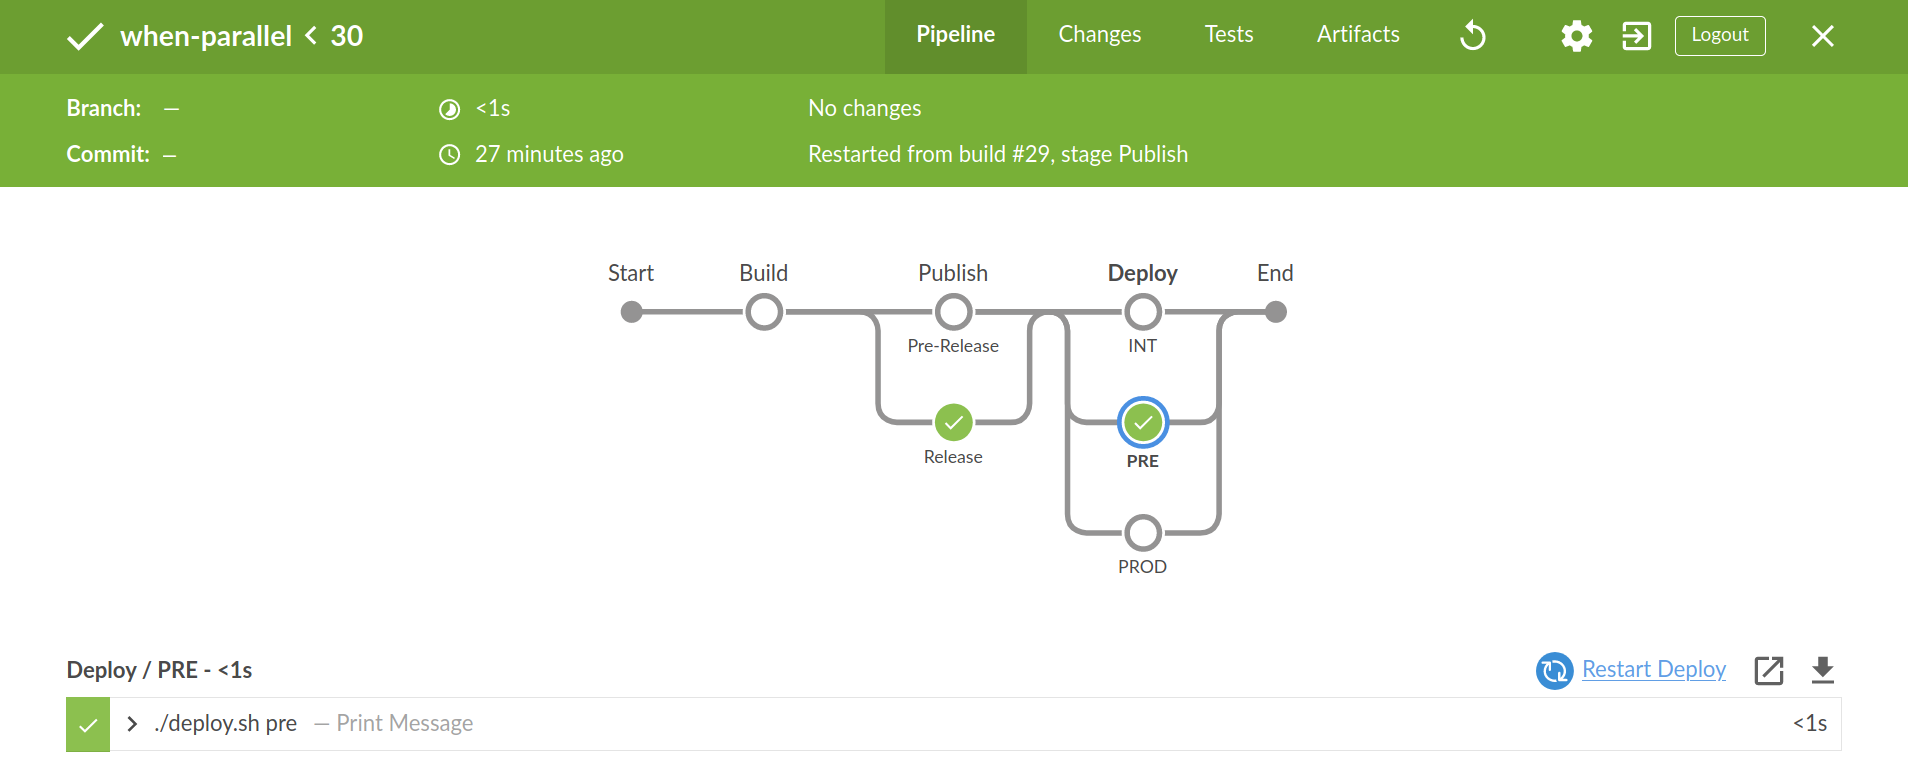 Jenkins Blue Ocean view showing a complex pipeline with parallel conditional stages